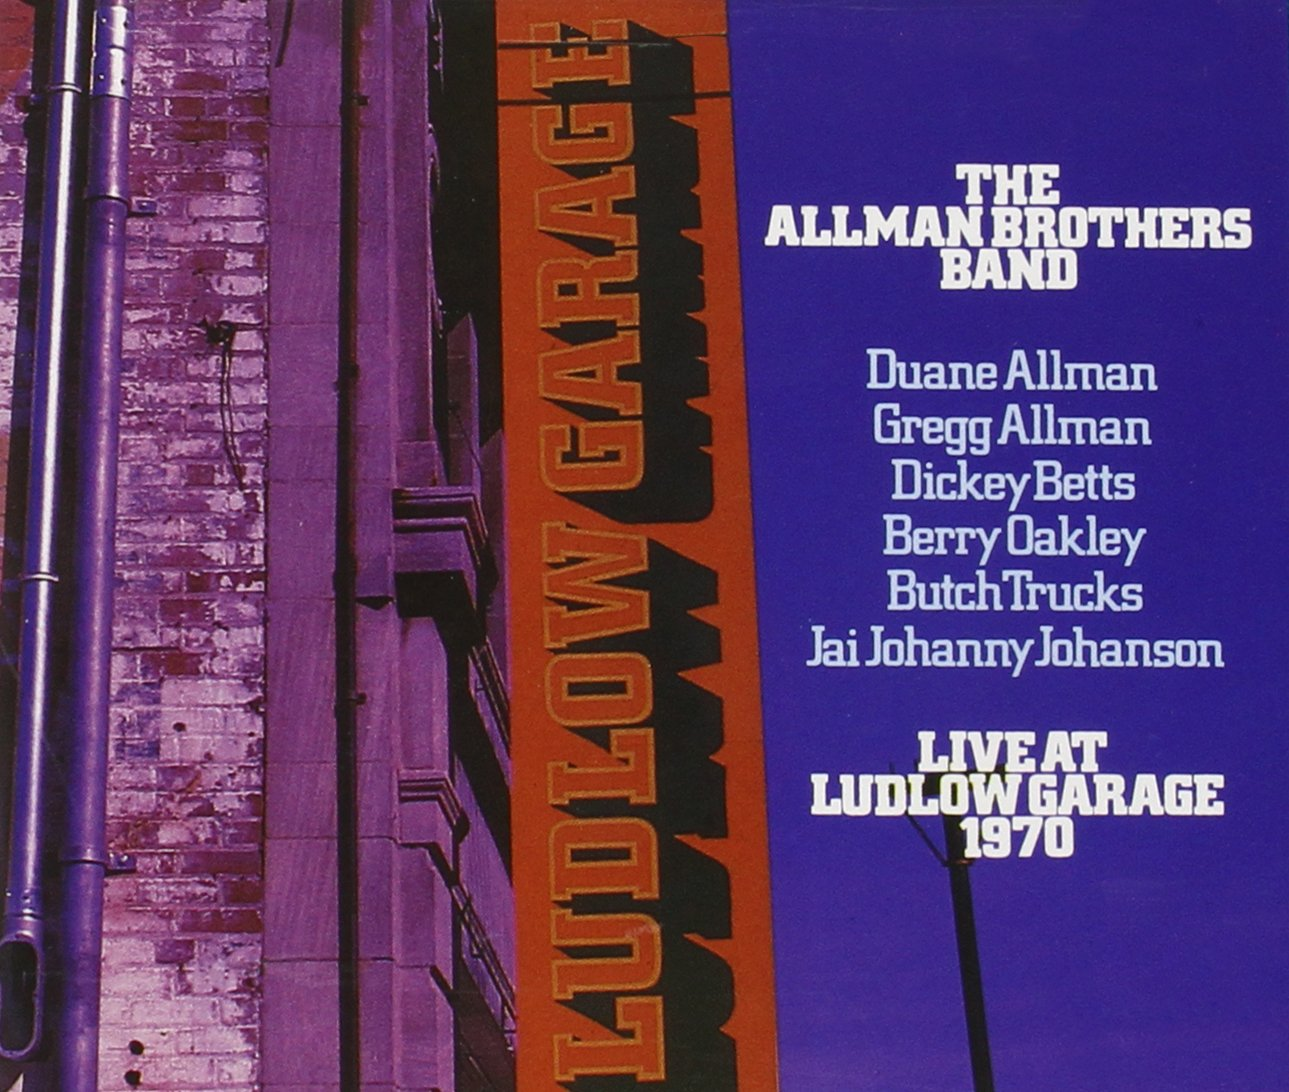 the allman brothers band live at ludlow garage cd the allman brothers band live at ludlow garage 1970 2 cd com music